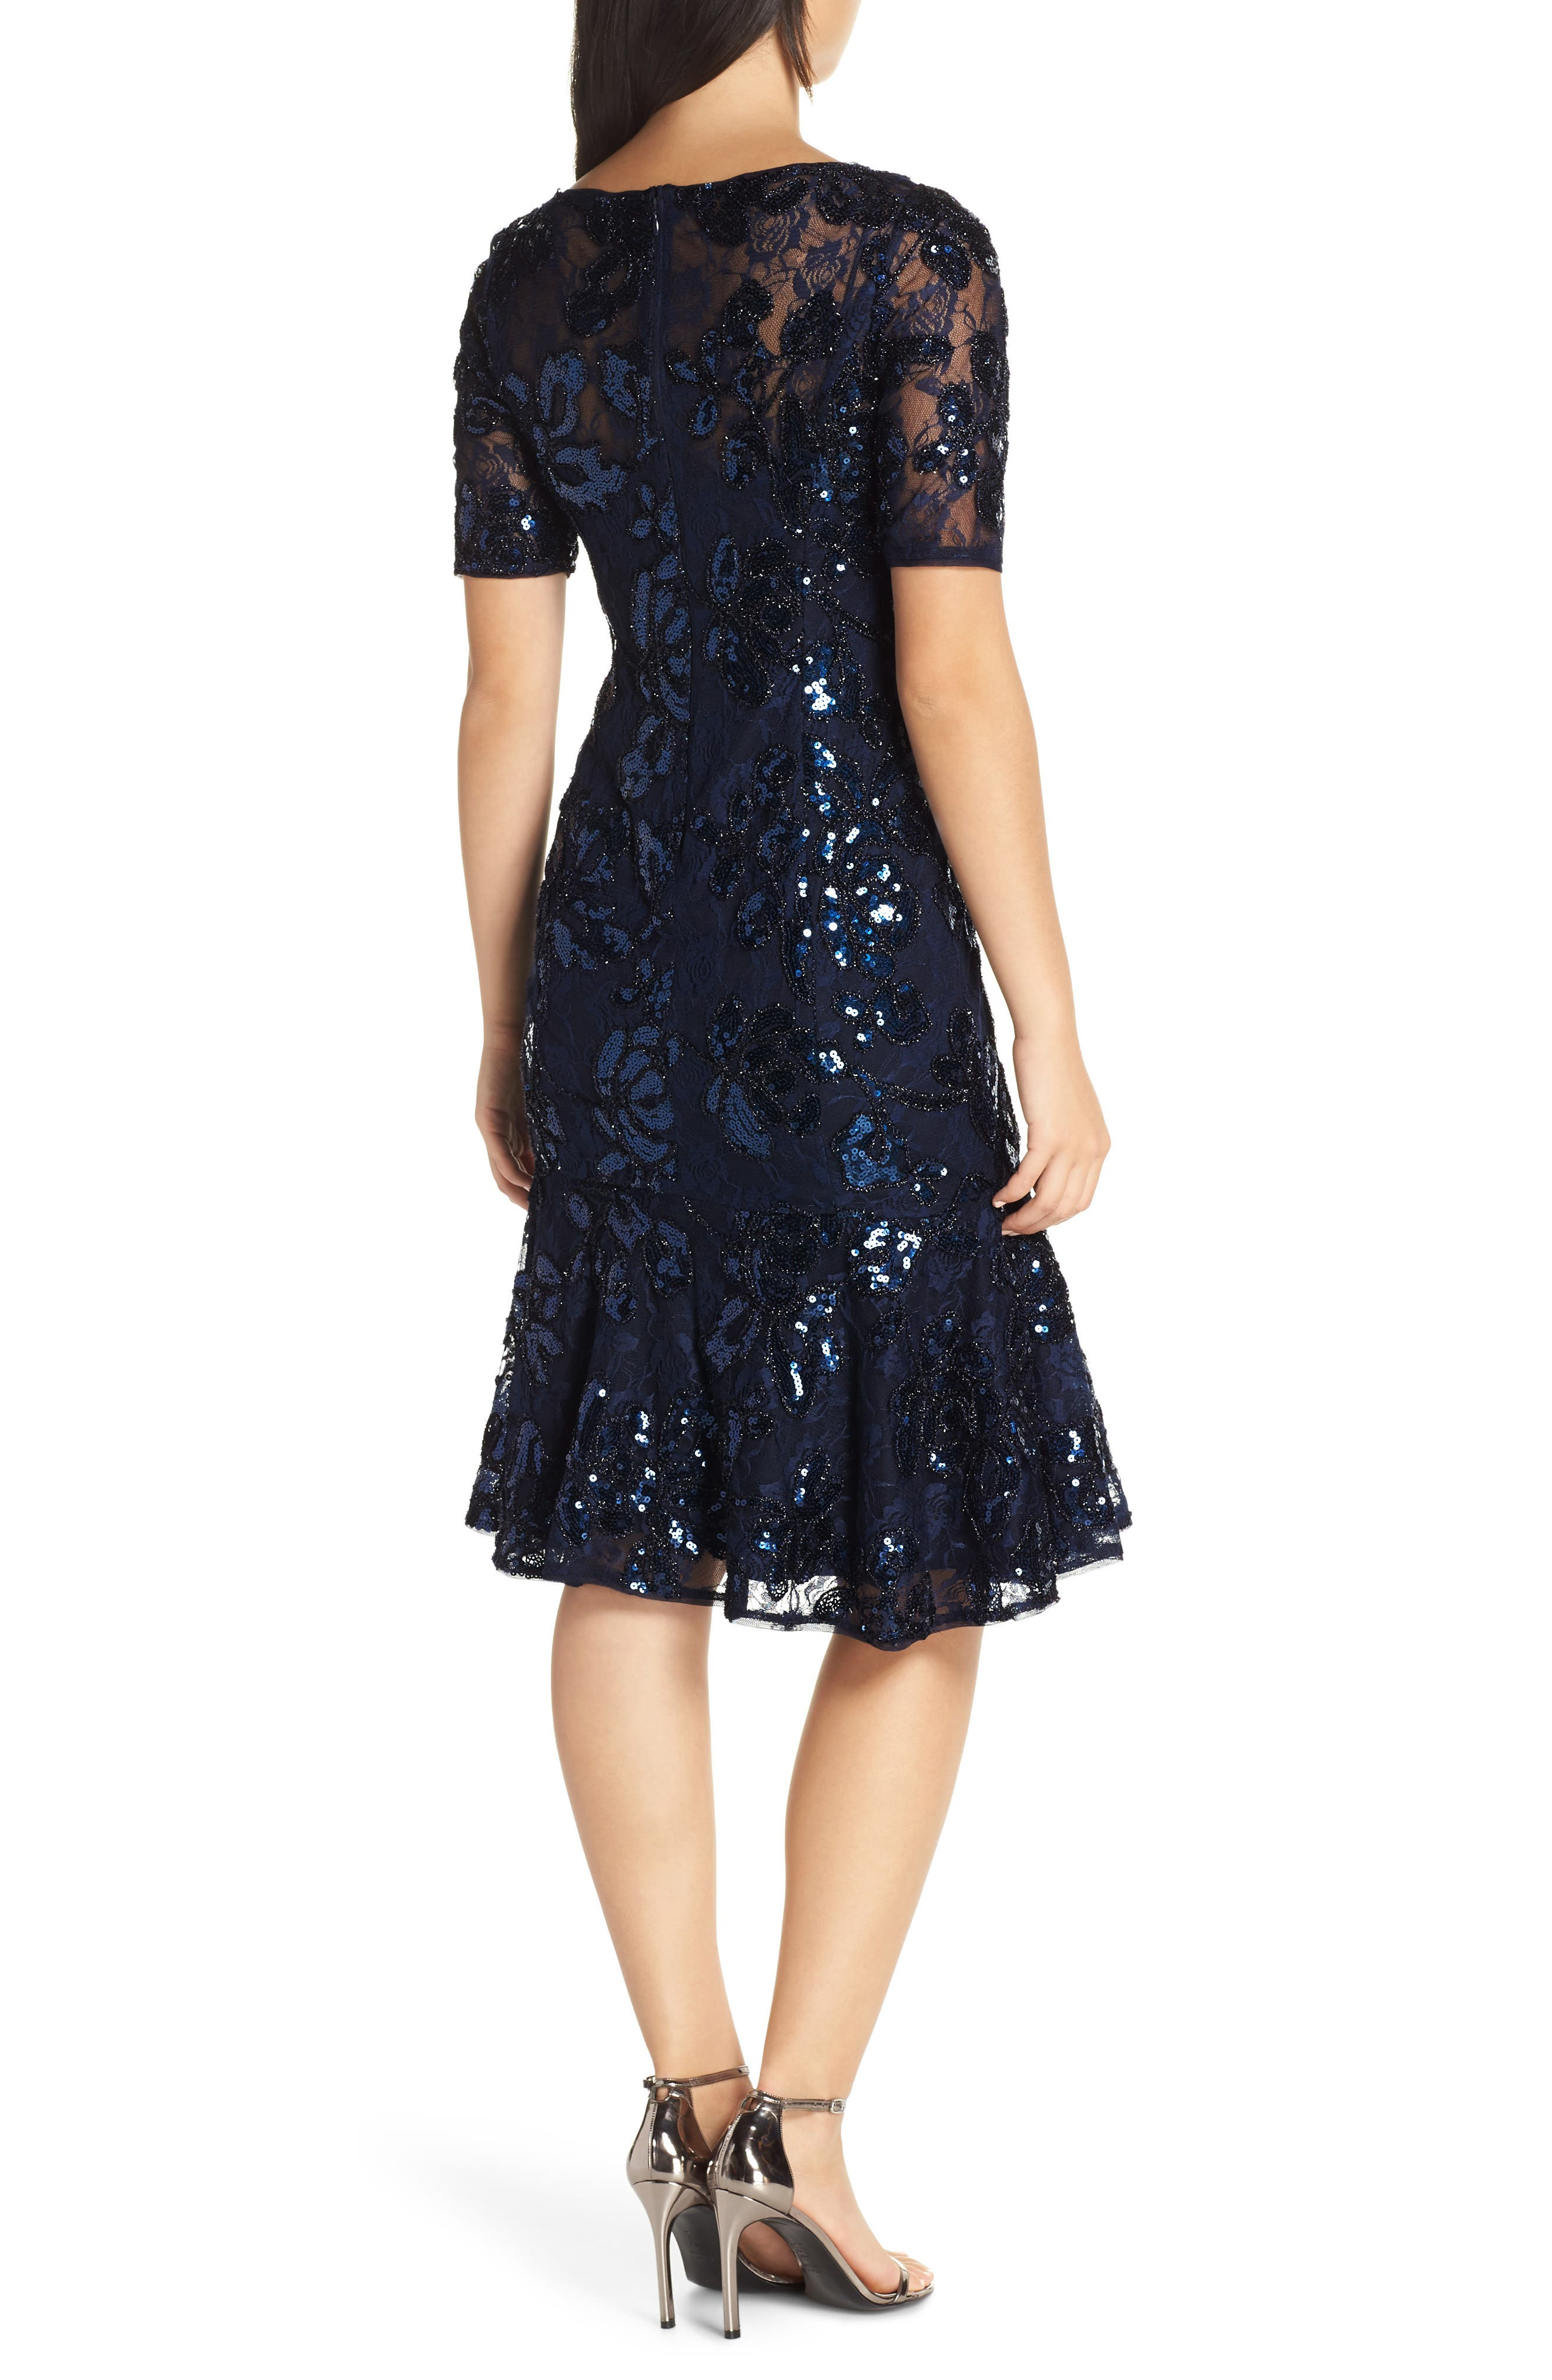 ADRIANNA PAPELL,                             Sequin Embellished Dress,                             Alternate thumbnail 2, color,                             410